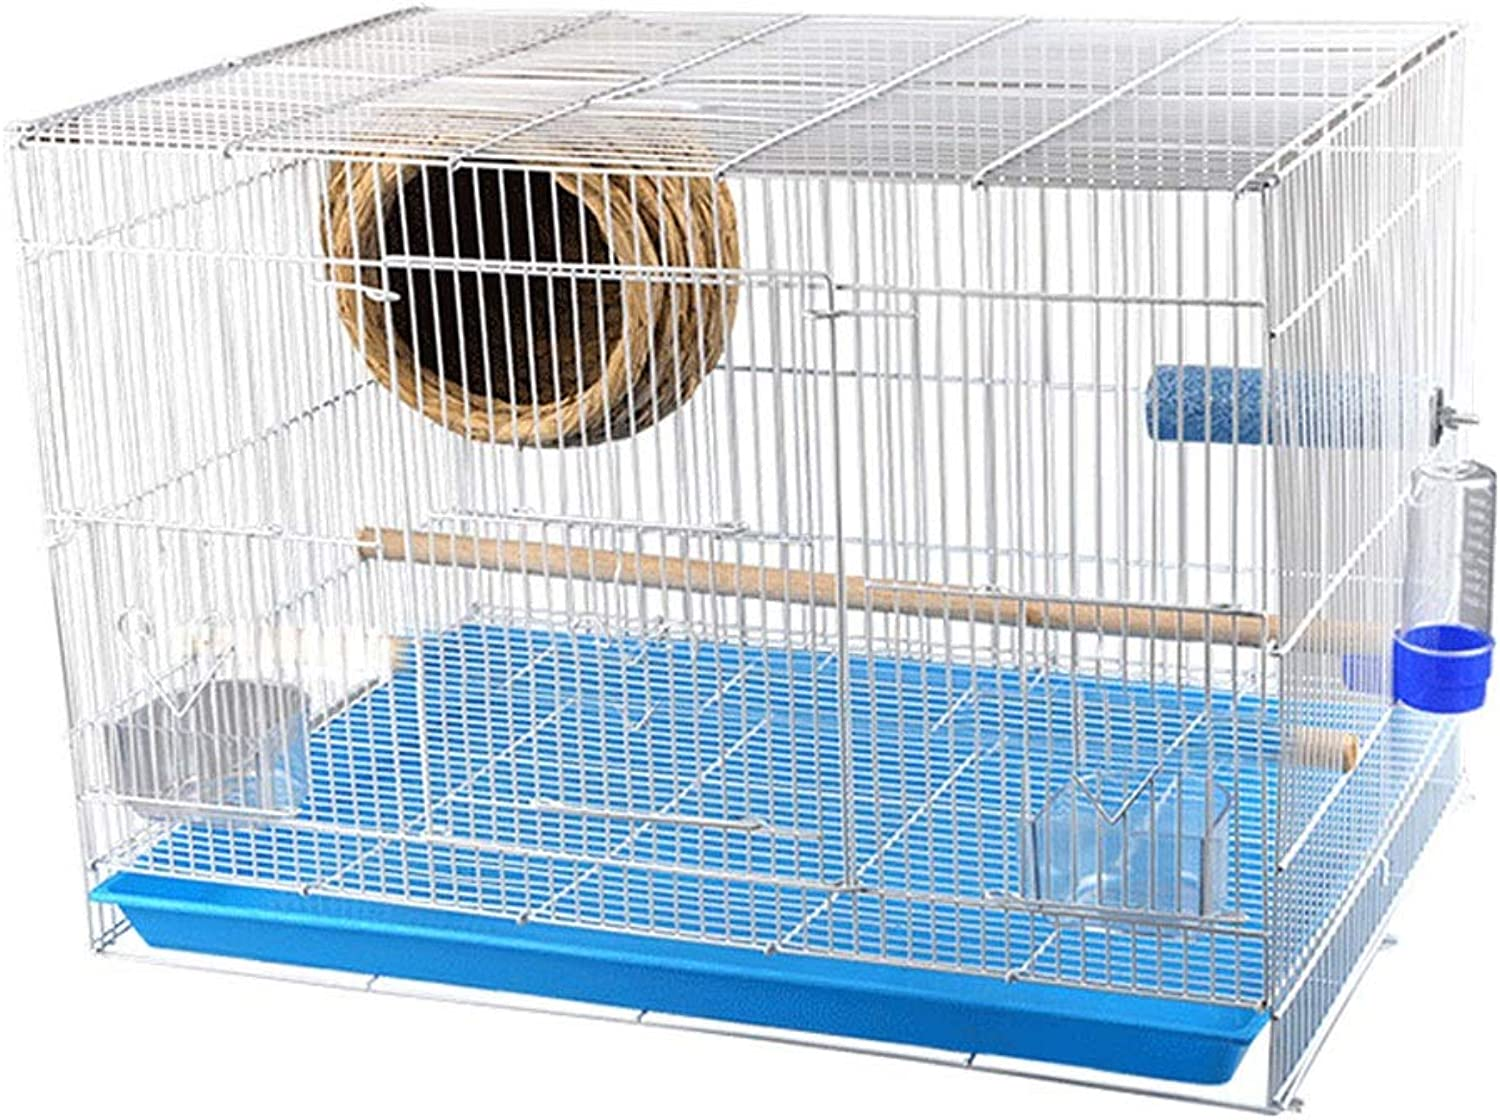 Birdcages Exquisite Small Bird Cage Wrought Iron Large Space Parred Thrush Pigeon Large With Bird Nest Bird Cage Bird nest